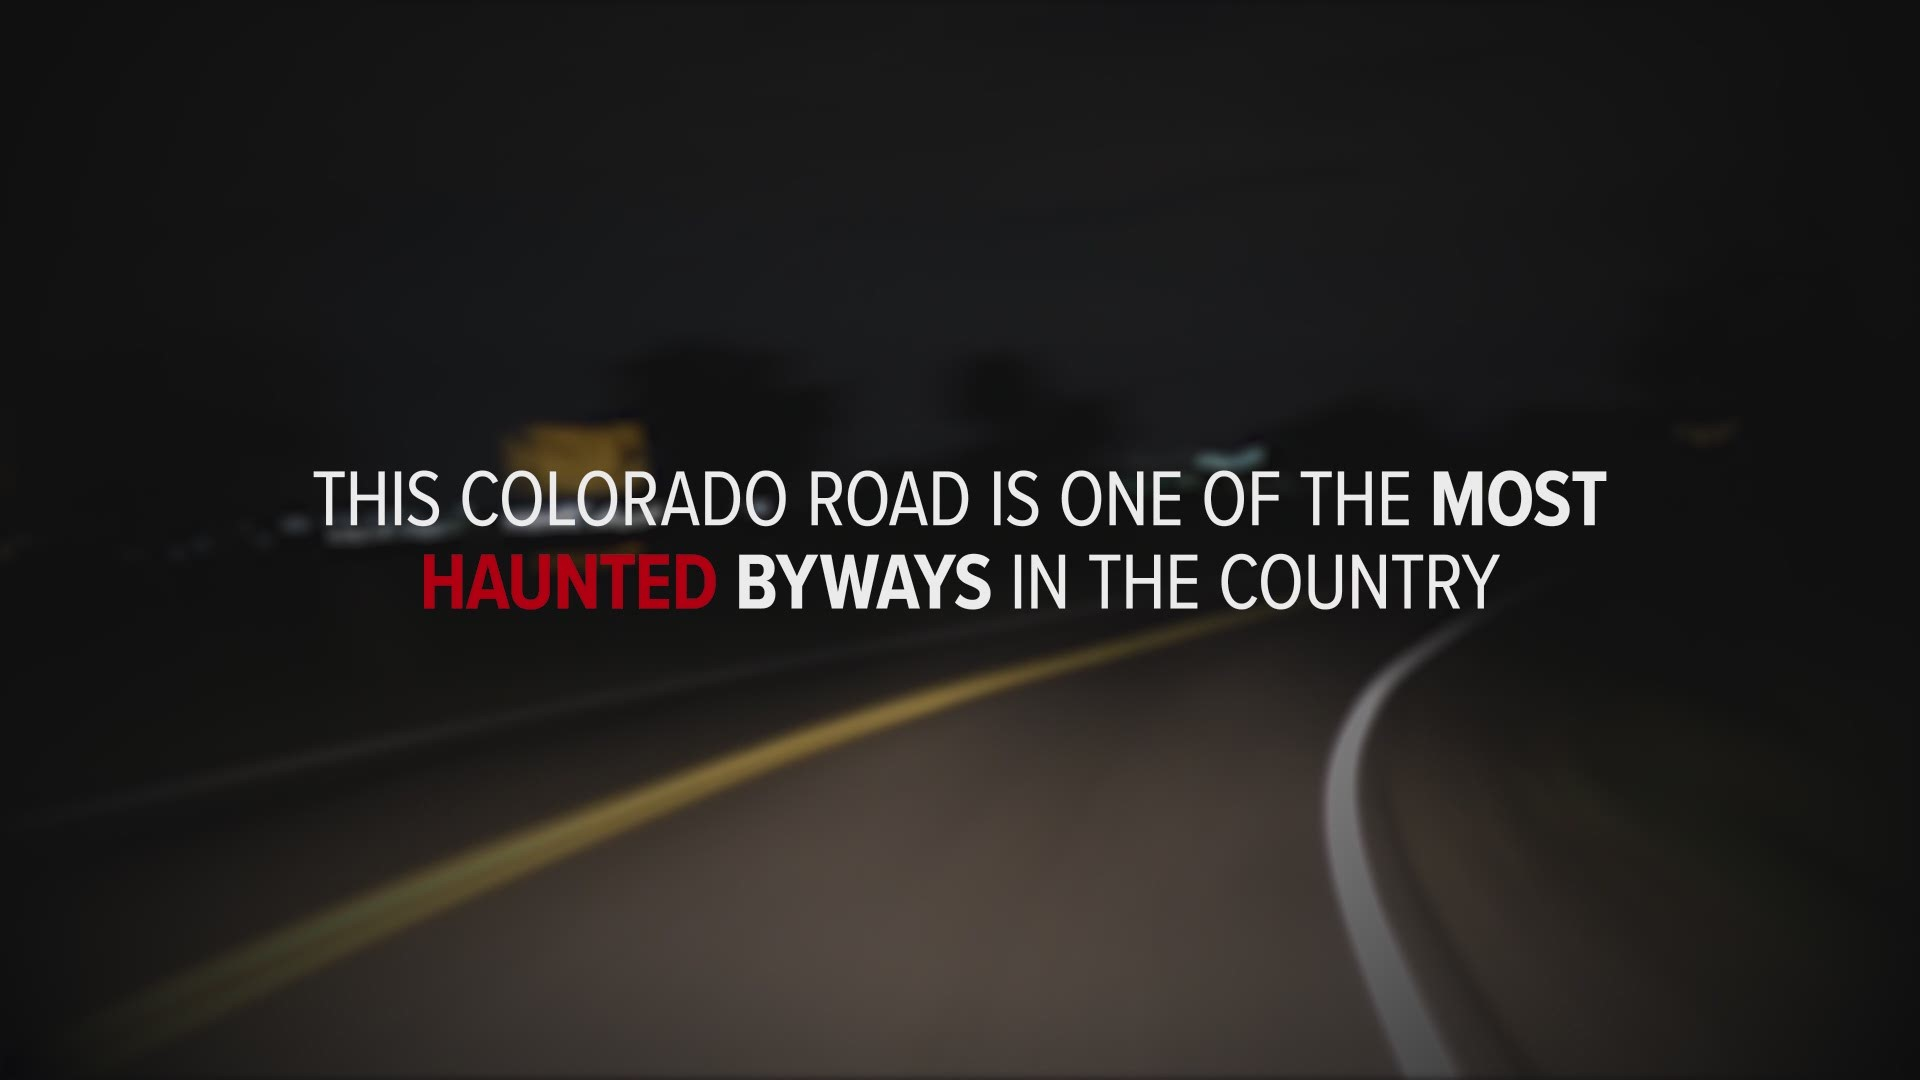 is colorado s riverdale road haunted it depends who you ask 9news com one of the most haunted roads in the country is just a few miles from downtown denver